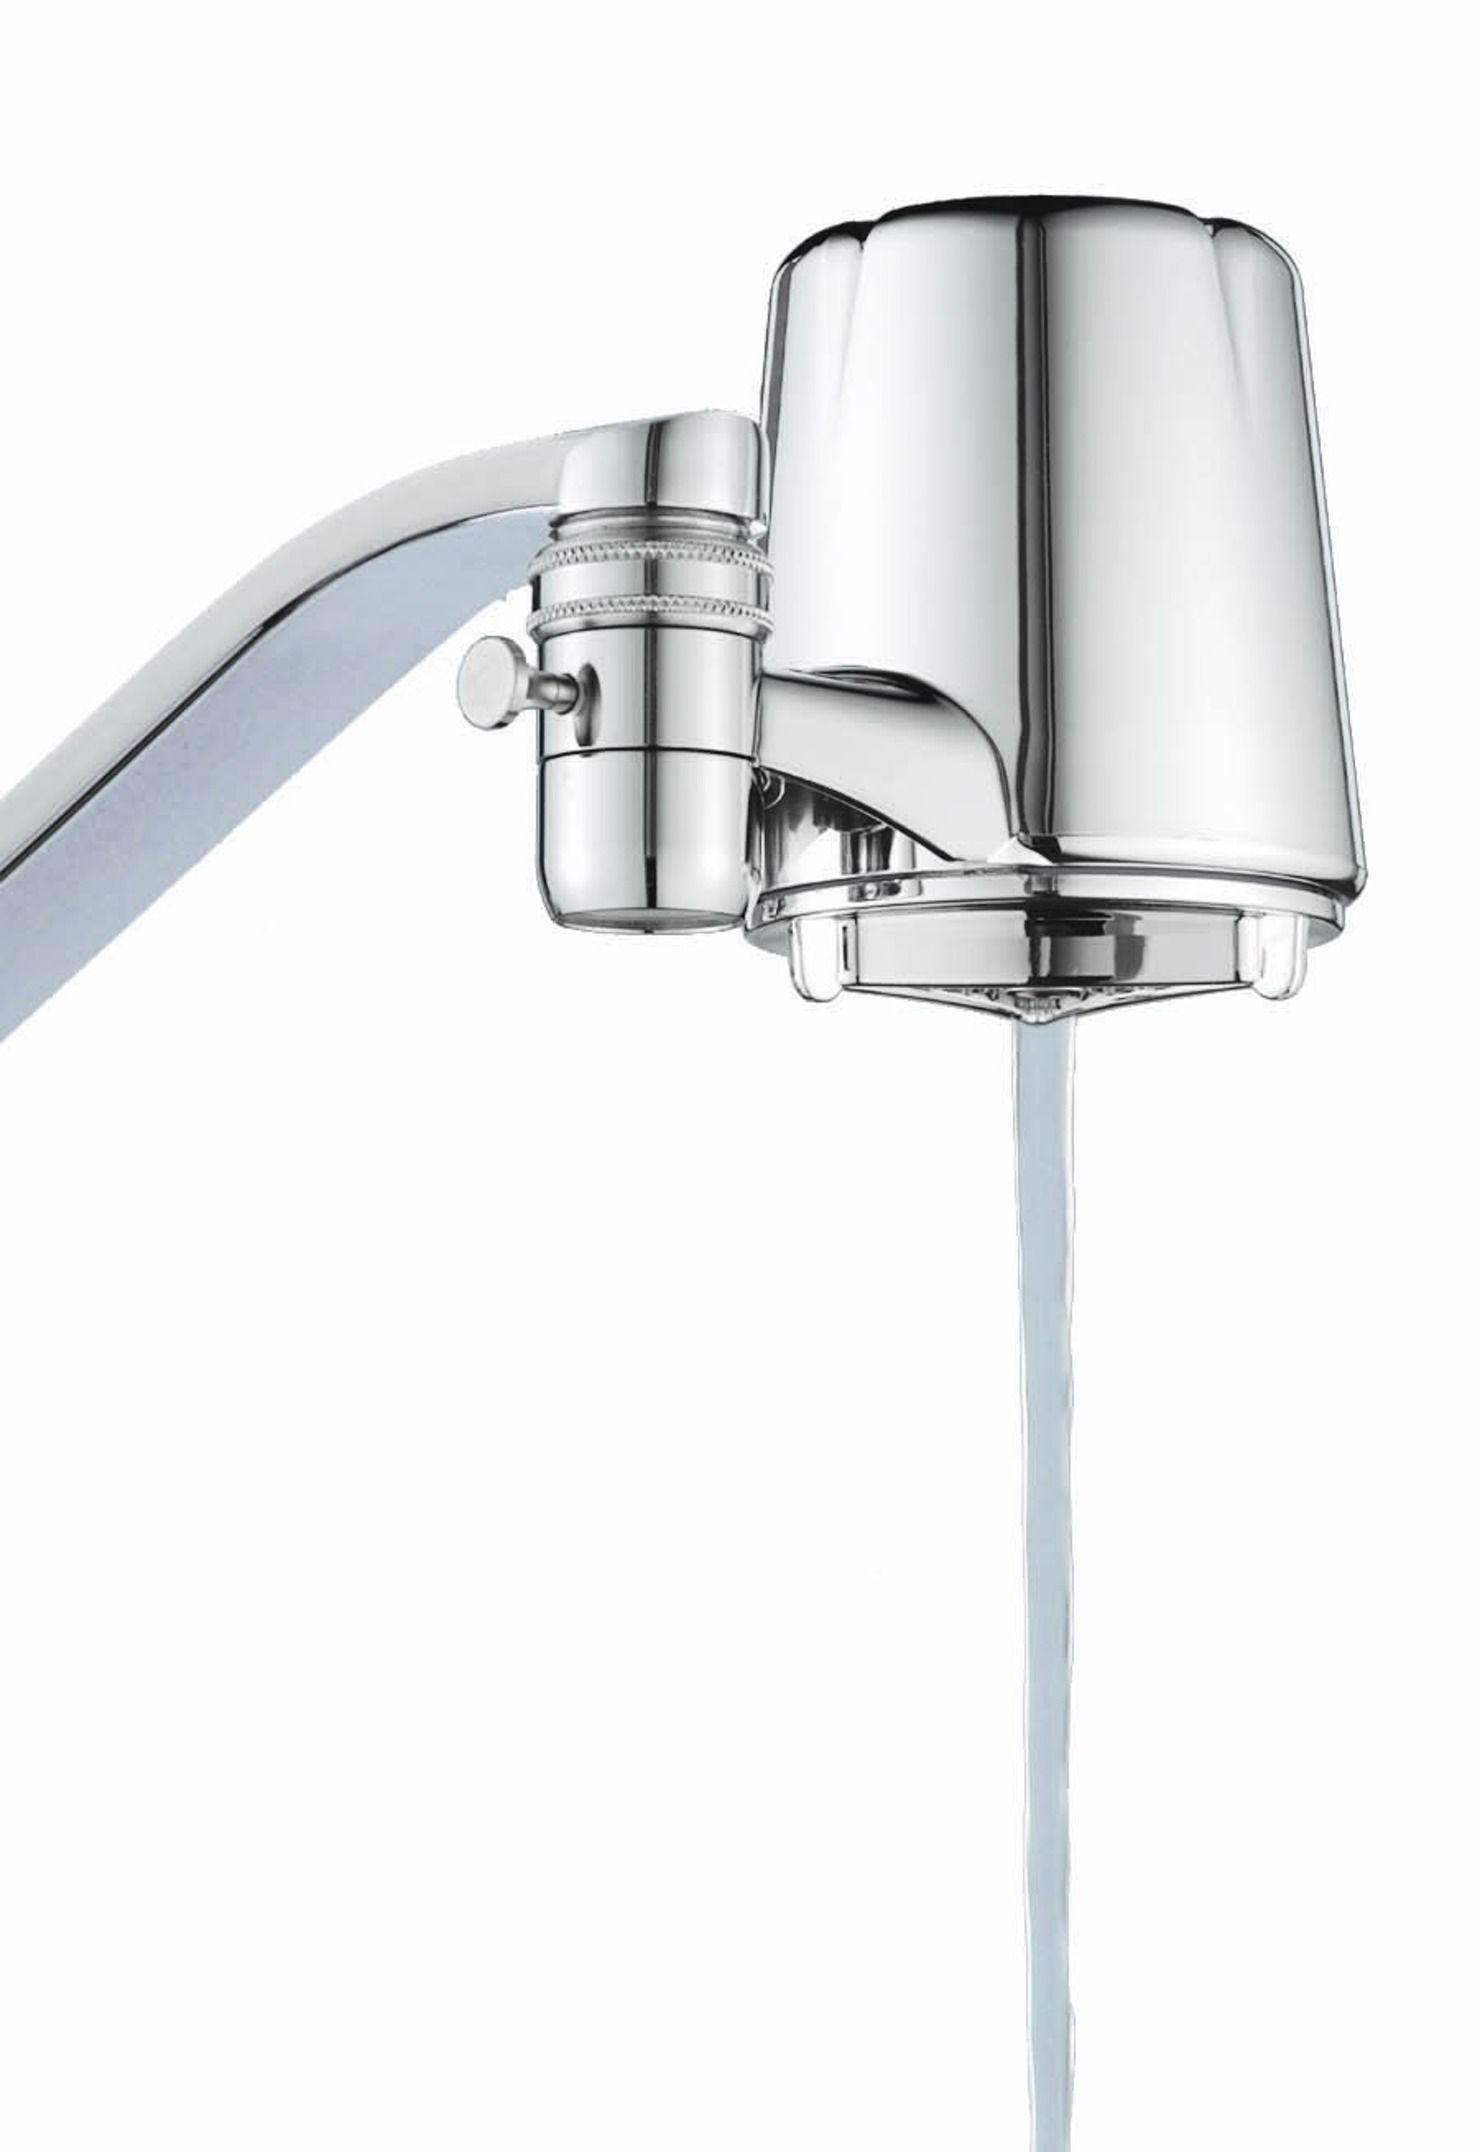 20 Random Items Highly Rated By Consumer Reports With Images Best Faucet Filtered Water Faucet Faucet